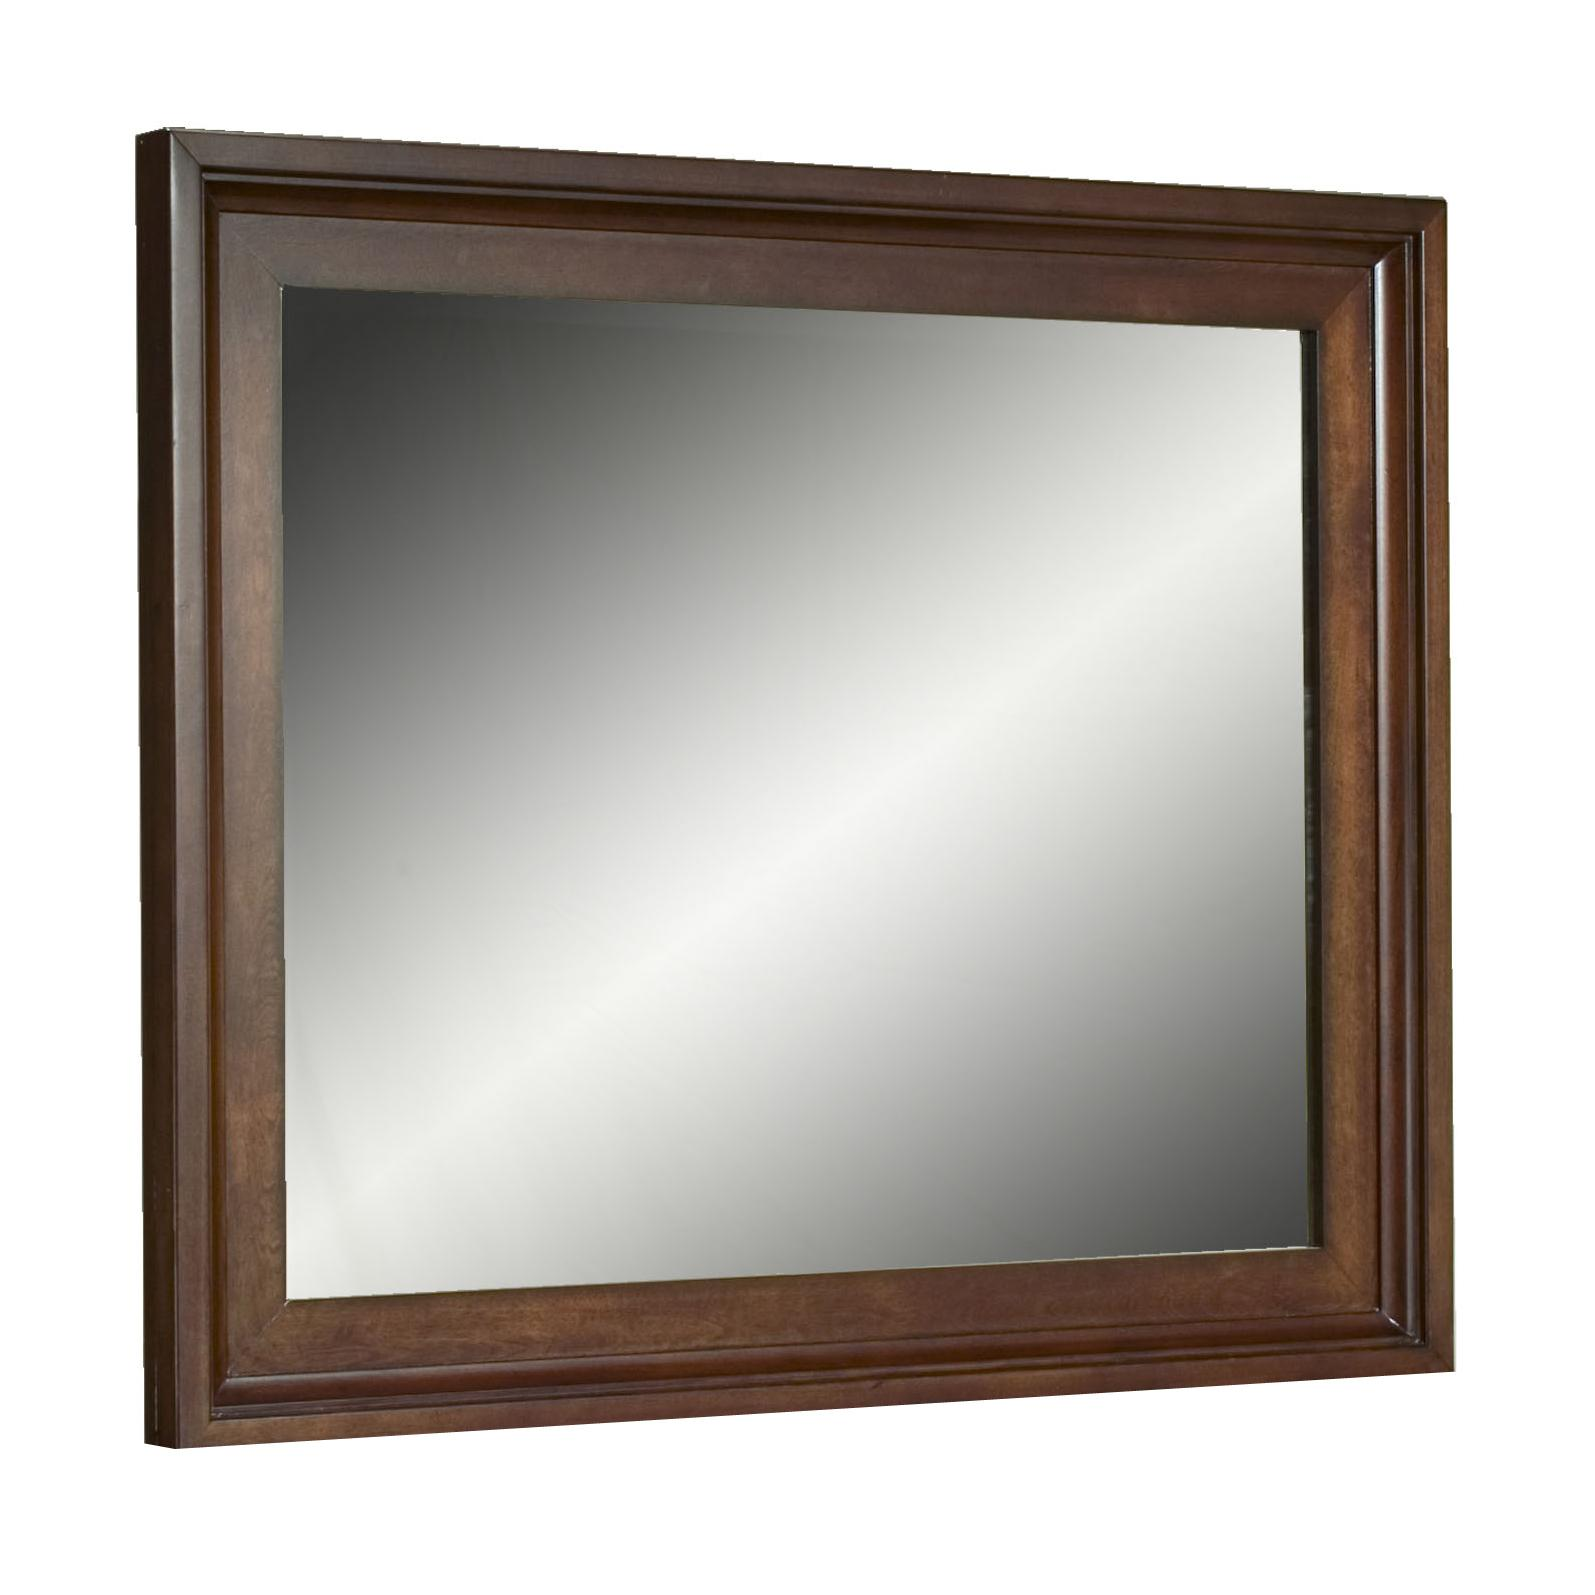 Cambridge Chesser Mirror by Aspenhome at Stoney Creek Furniture